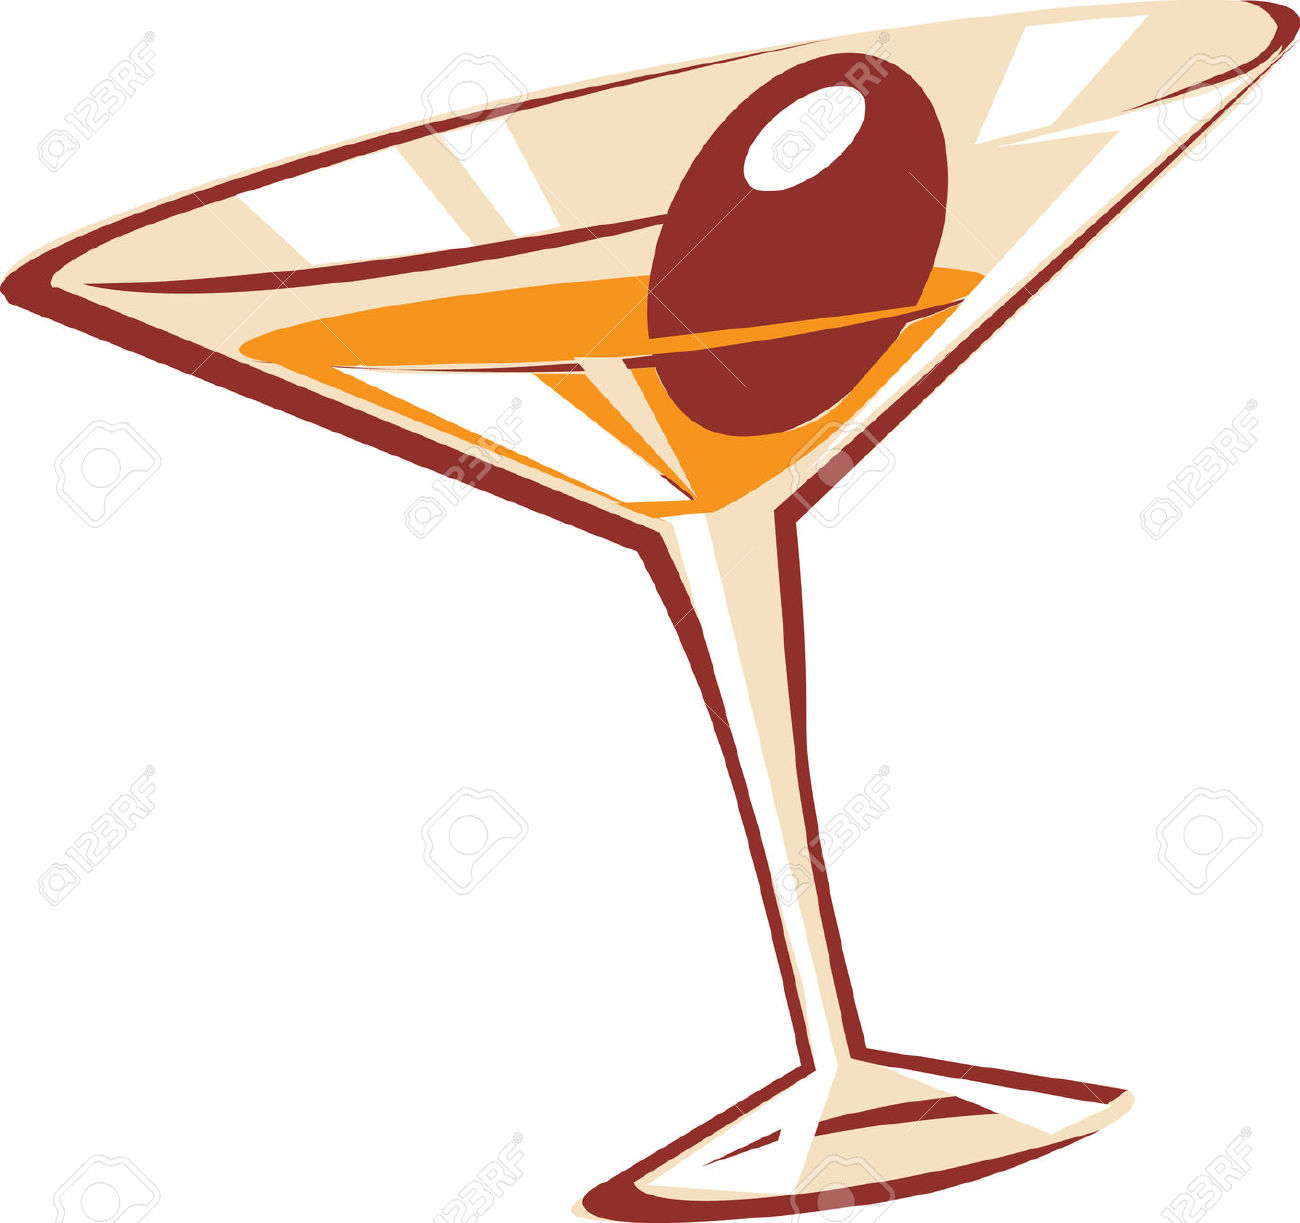 Vodka clipart martini glass Royalty Free And Illustration Martini